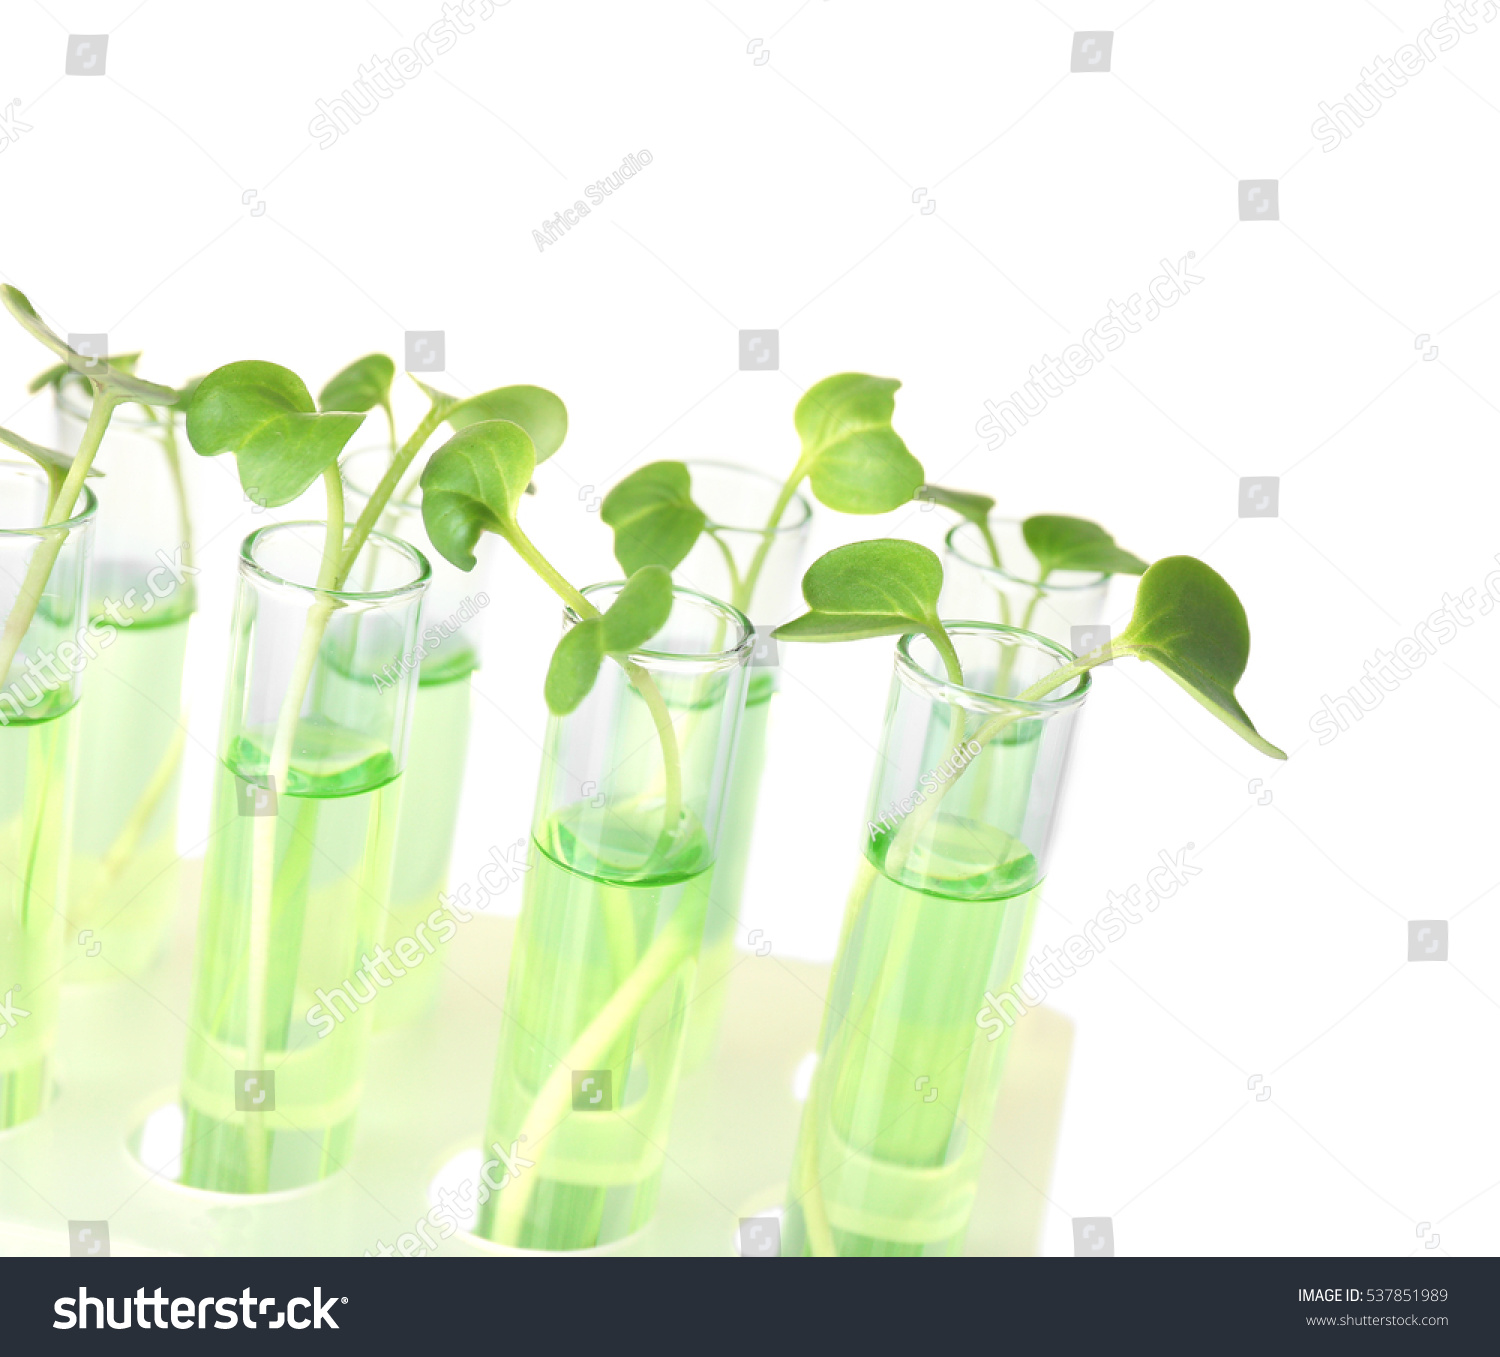 Plants Test Tubes On Light Background Stock Photo (Royalty Free ...